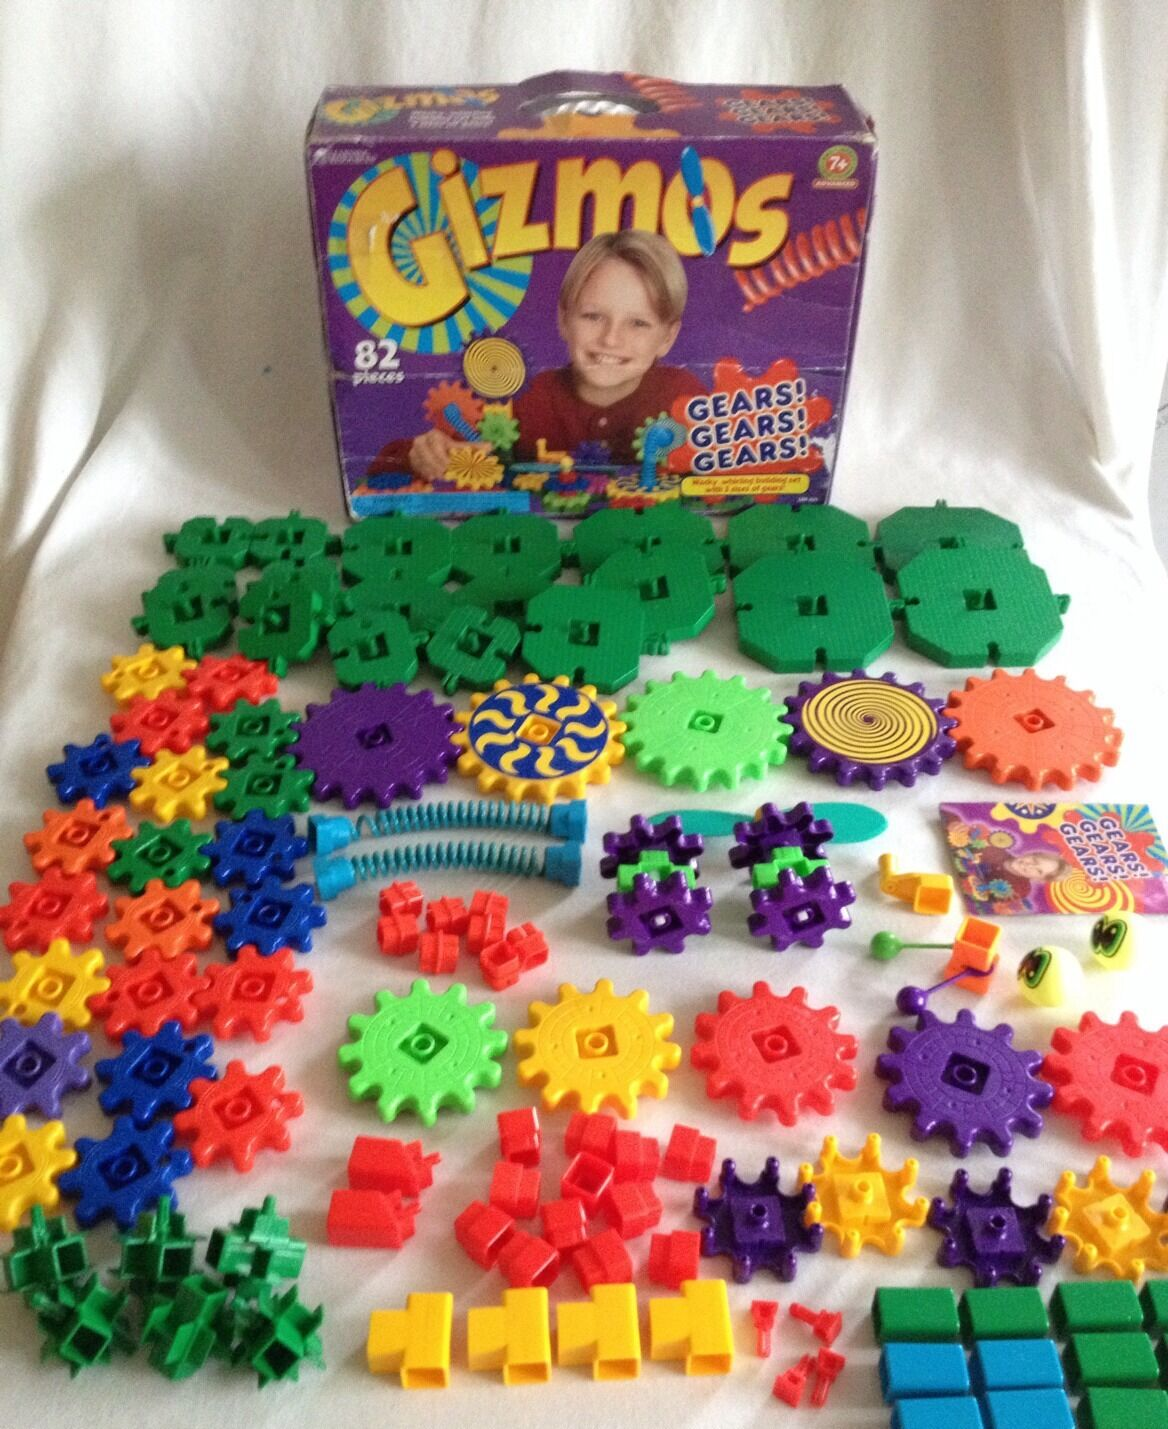 Gears  Gears  Gears  Gizmos Complete & More 121 Pieces Learning Resources